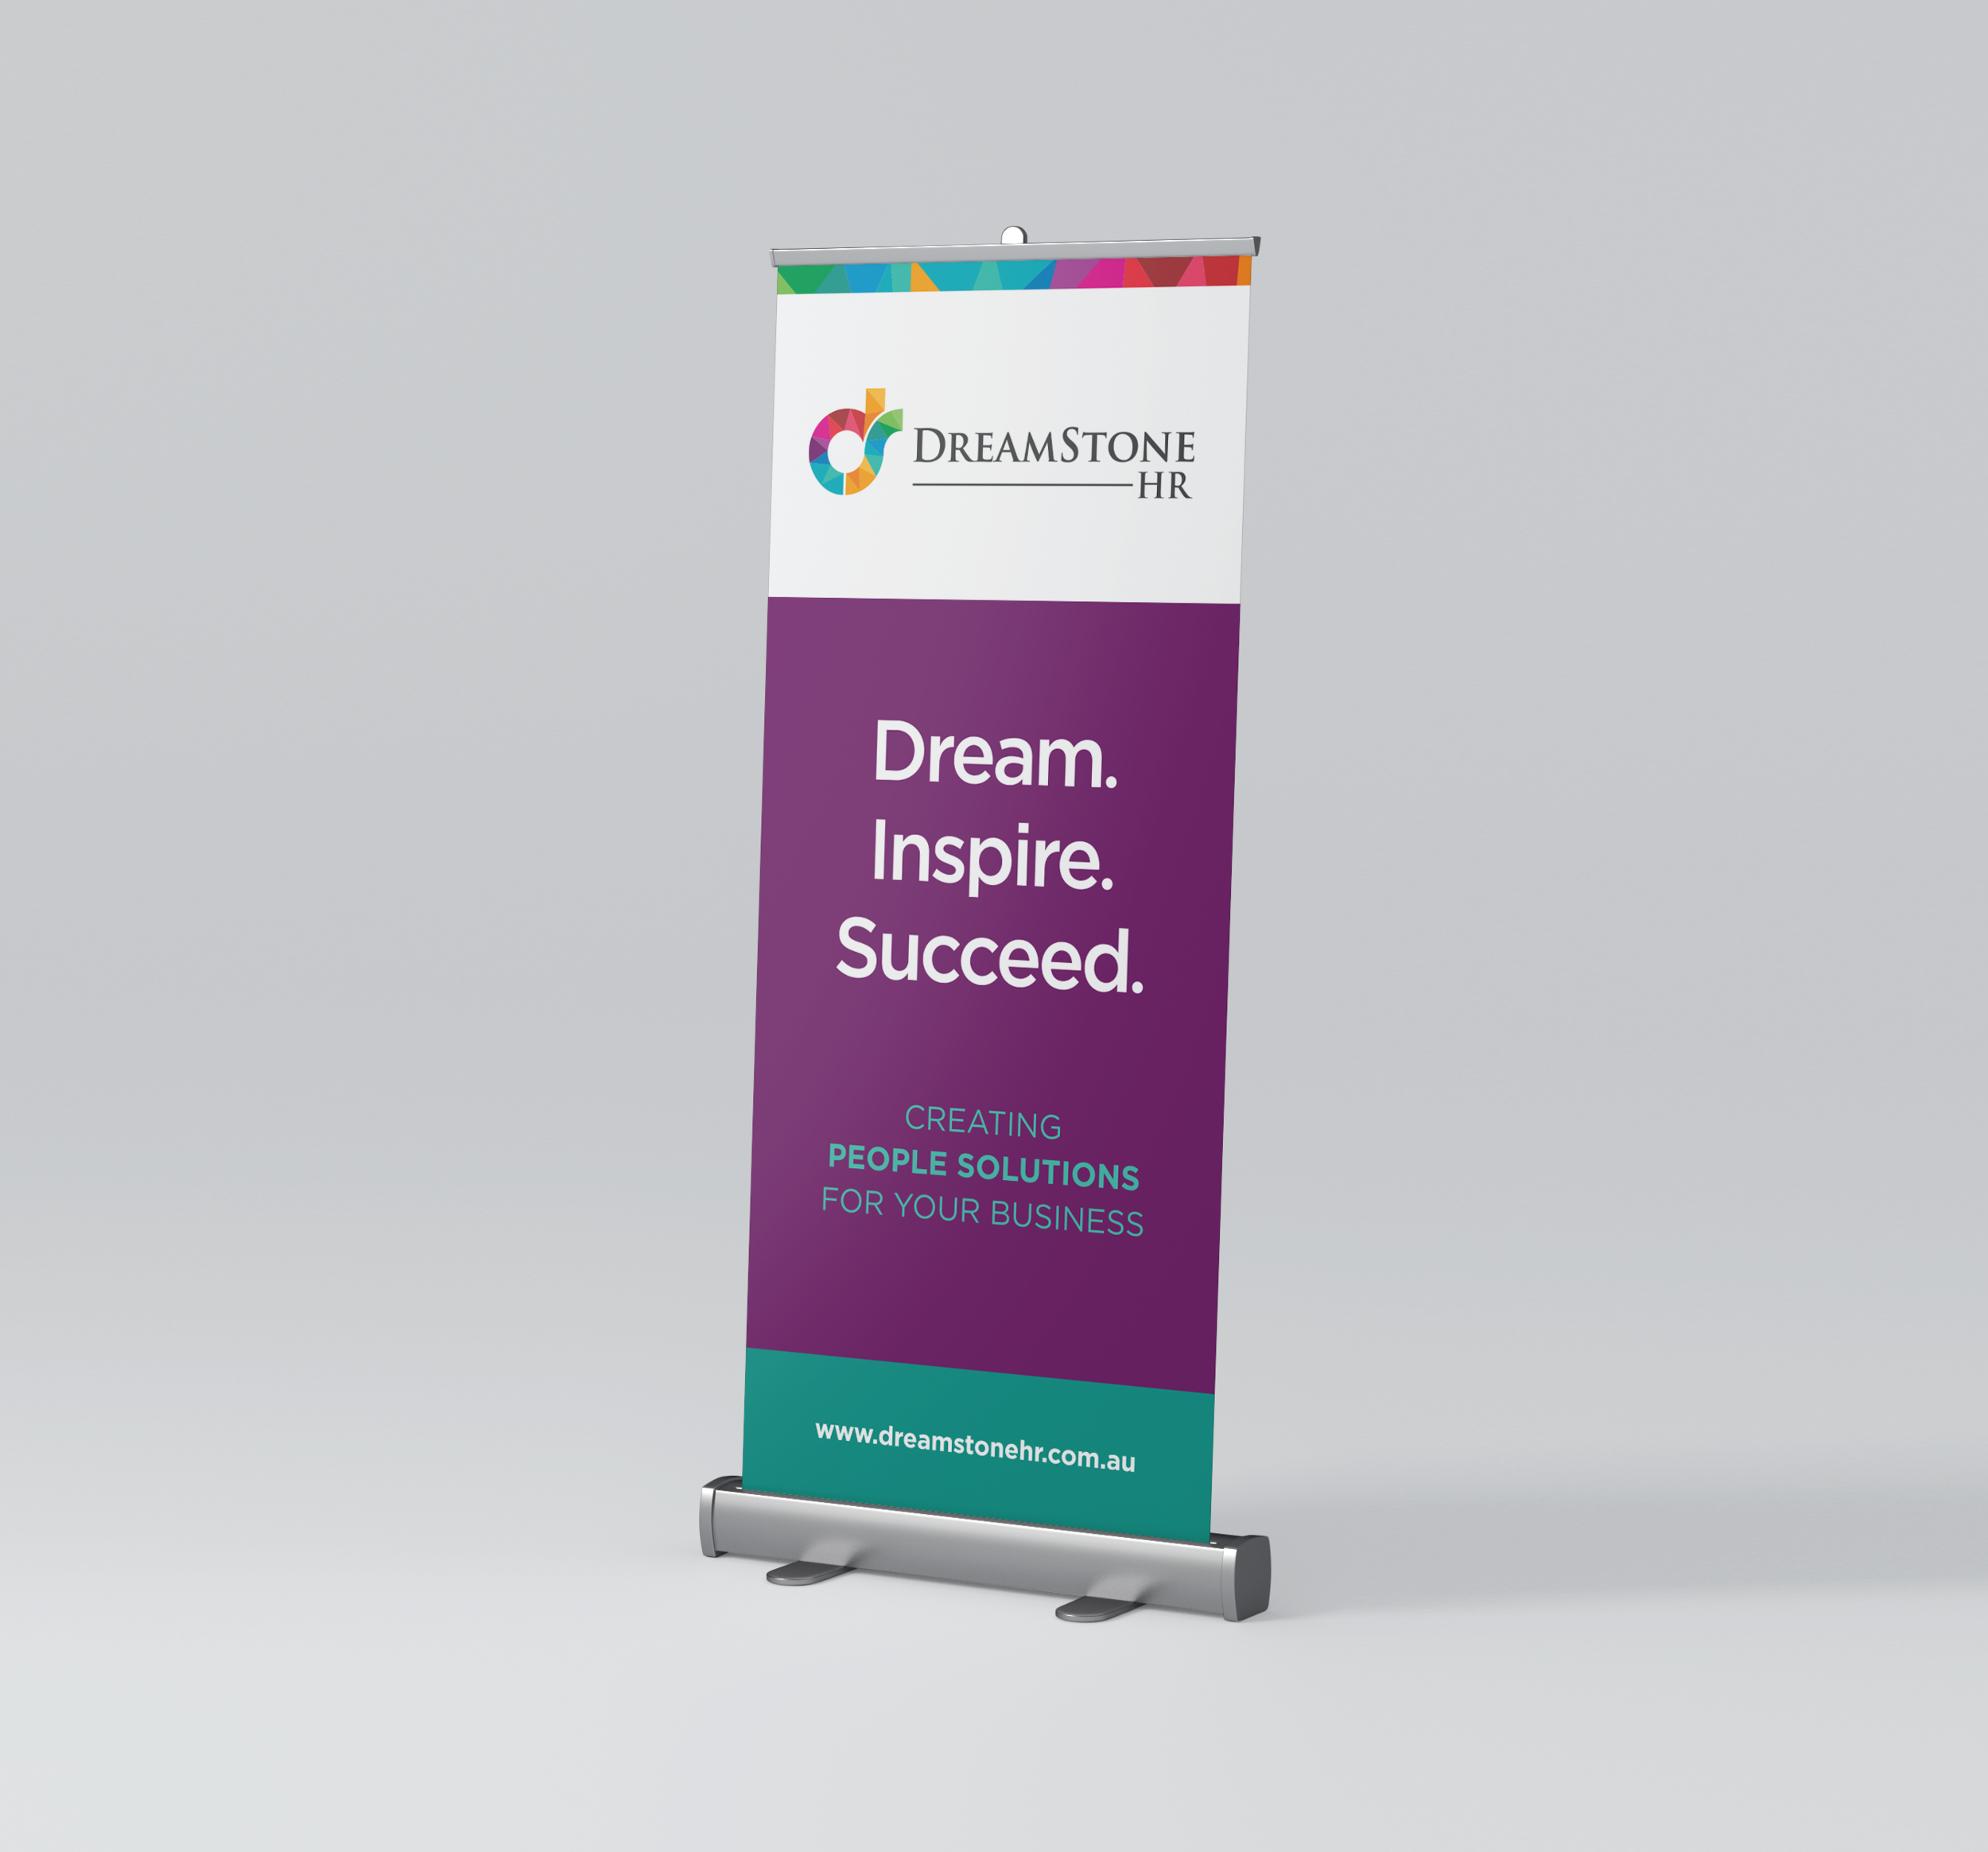 DS Mockup_Rollup_side_85x200.png